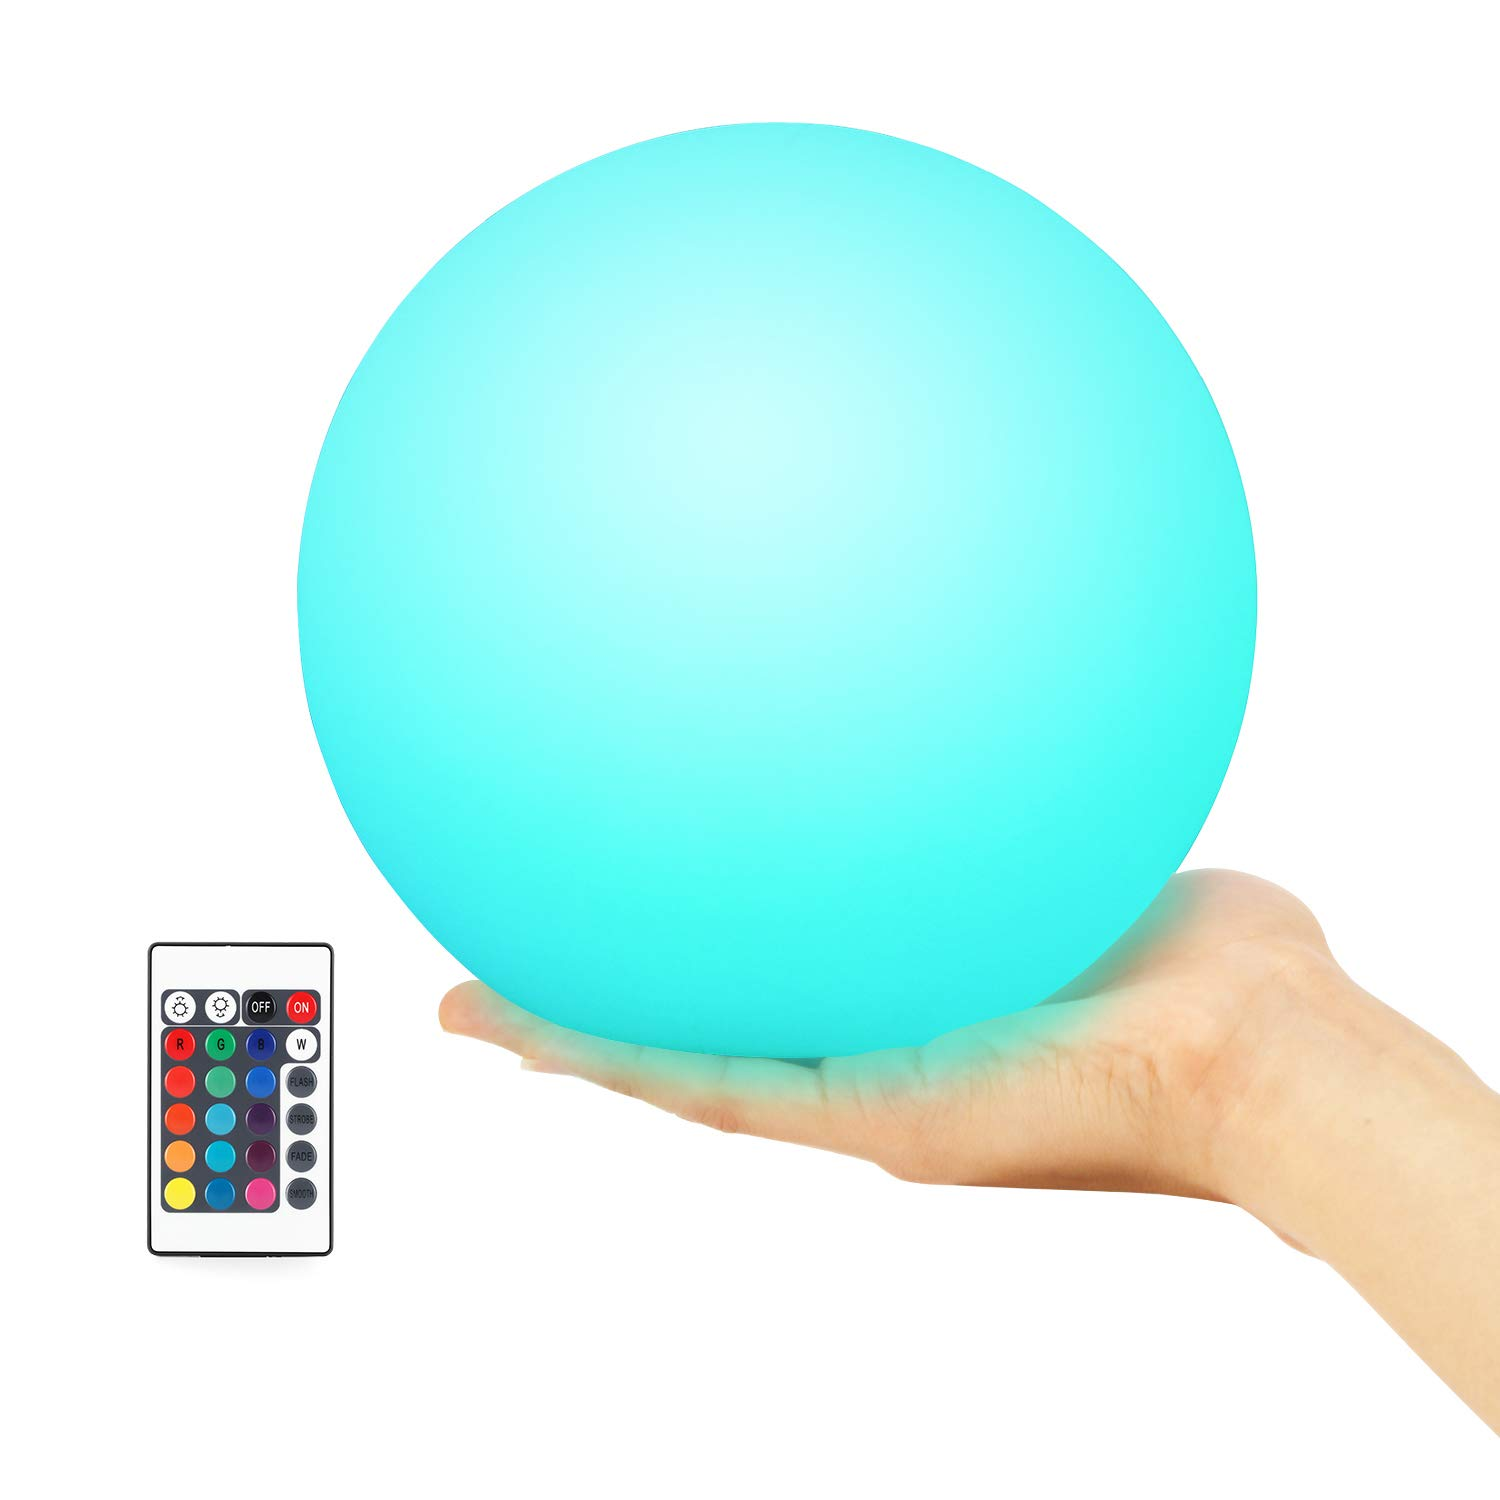 Kohree Floating Pool Light, Light Up Swimming Pool Ball Light for Inground and Above Pool with Wireless Remote, 6 Inch, 16 Colors Rechargeable Floating Orb Light